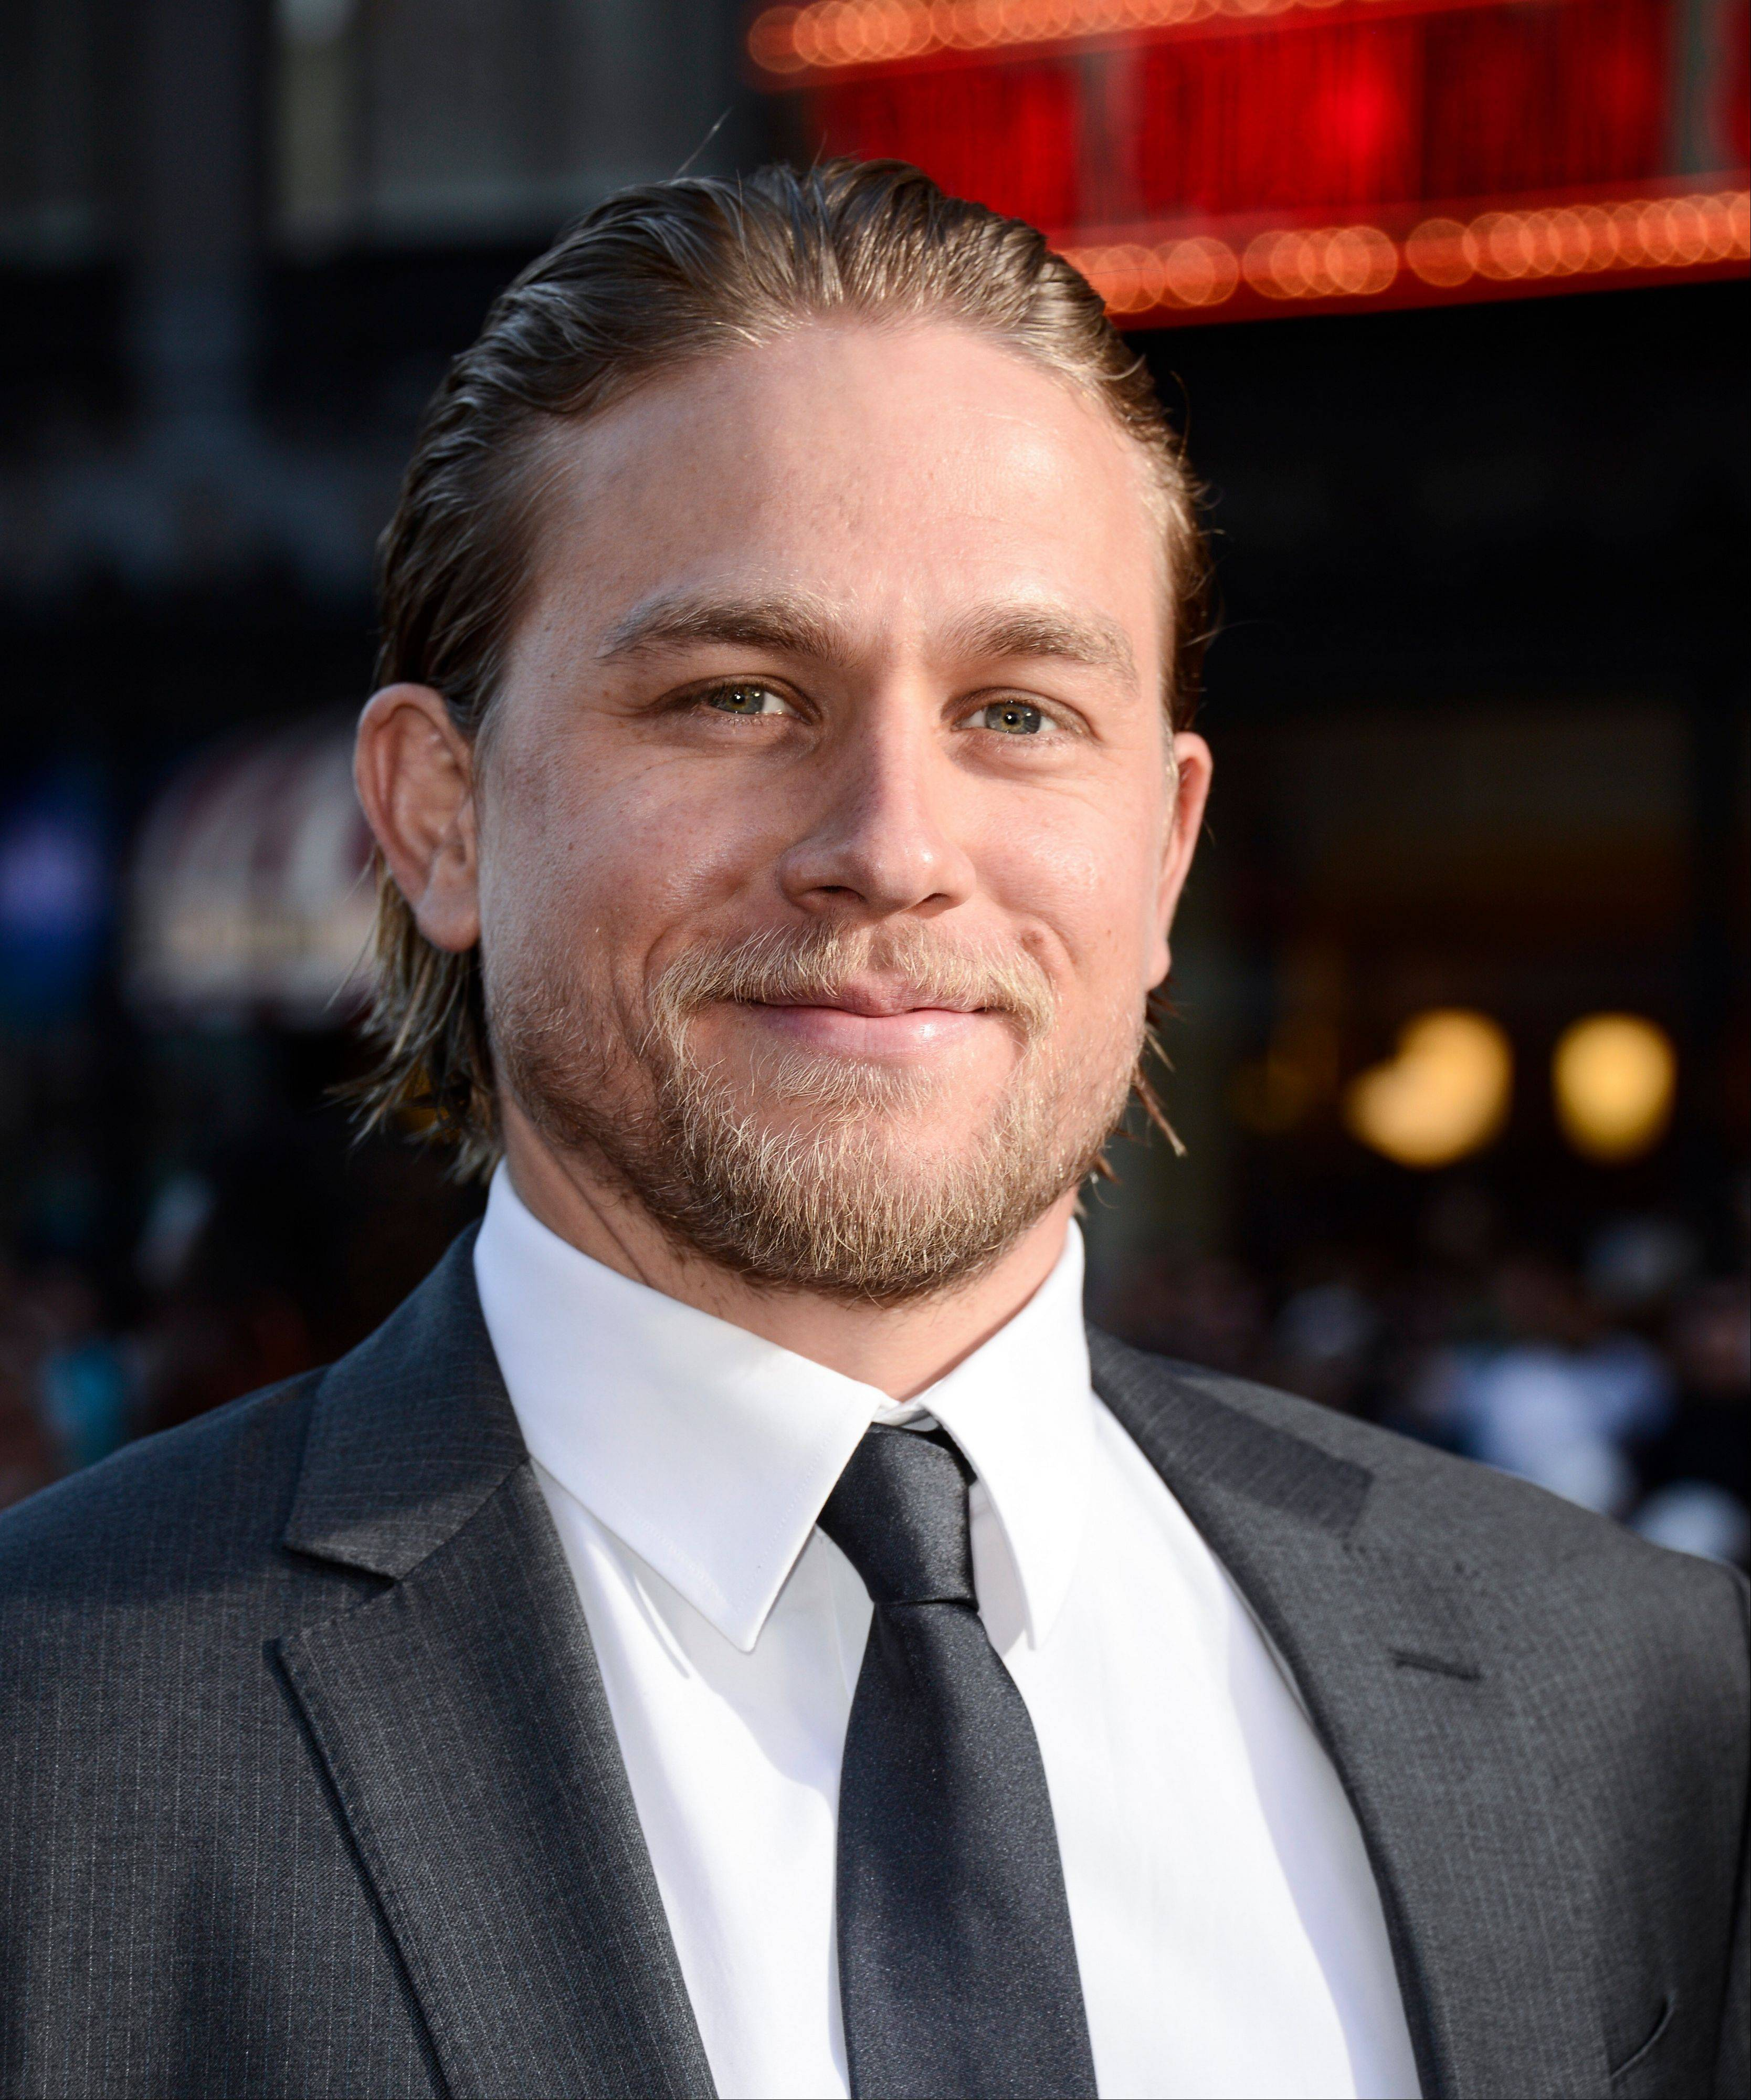 Actor Charlie Hunnam arrives on the red carpet at the season six premiere screening of the television series �Sons of Anarchy� at the Dolby Theatre on Saturday, Sept. 7, 2013 in Los Angeles. Hunnam says the coveted role in �50 Shades of Grey� is a new challenge, but he�s sure it the racy scenes won�t be too much of a problem for him.